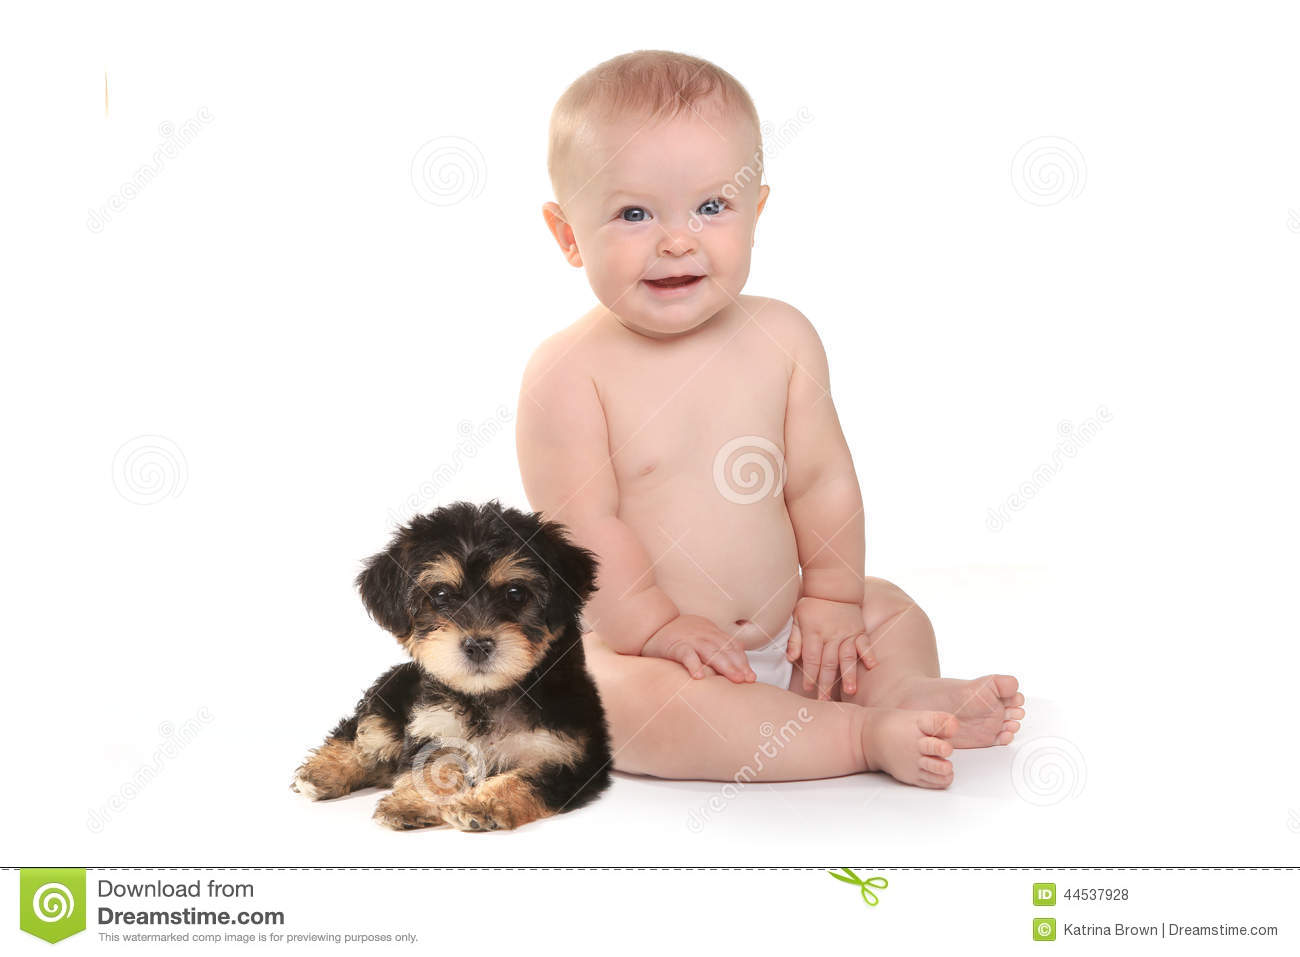 812 Teacup Puppy Photos Free Royalty Free Stock Photos From Dreamstime